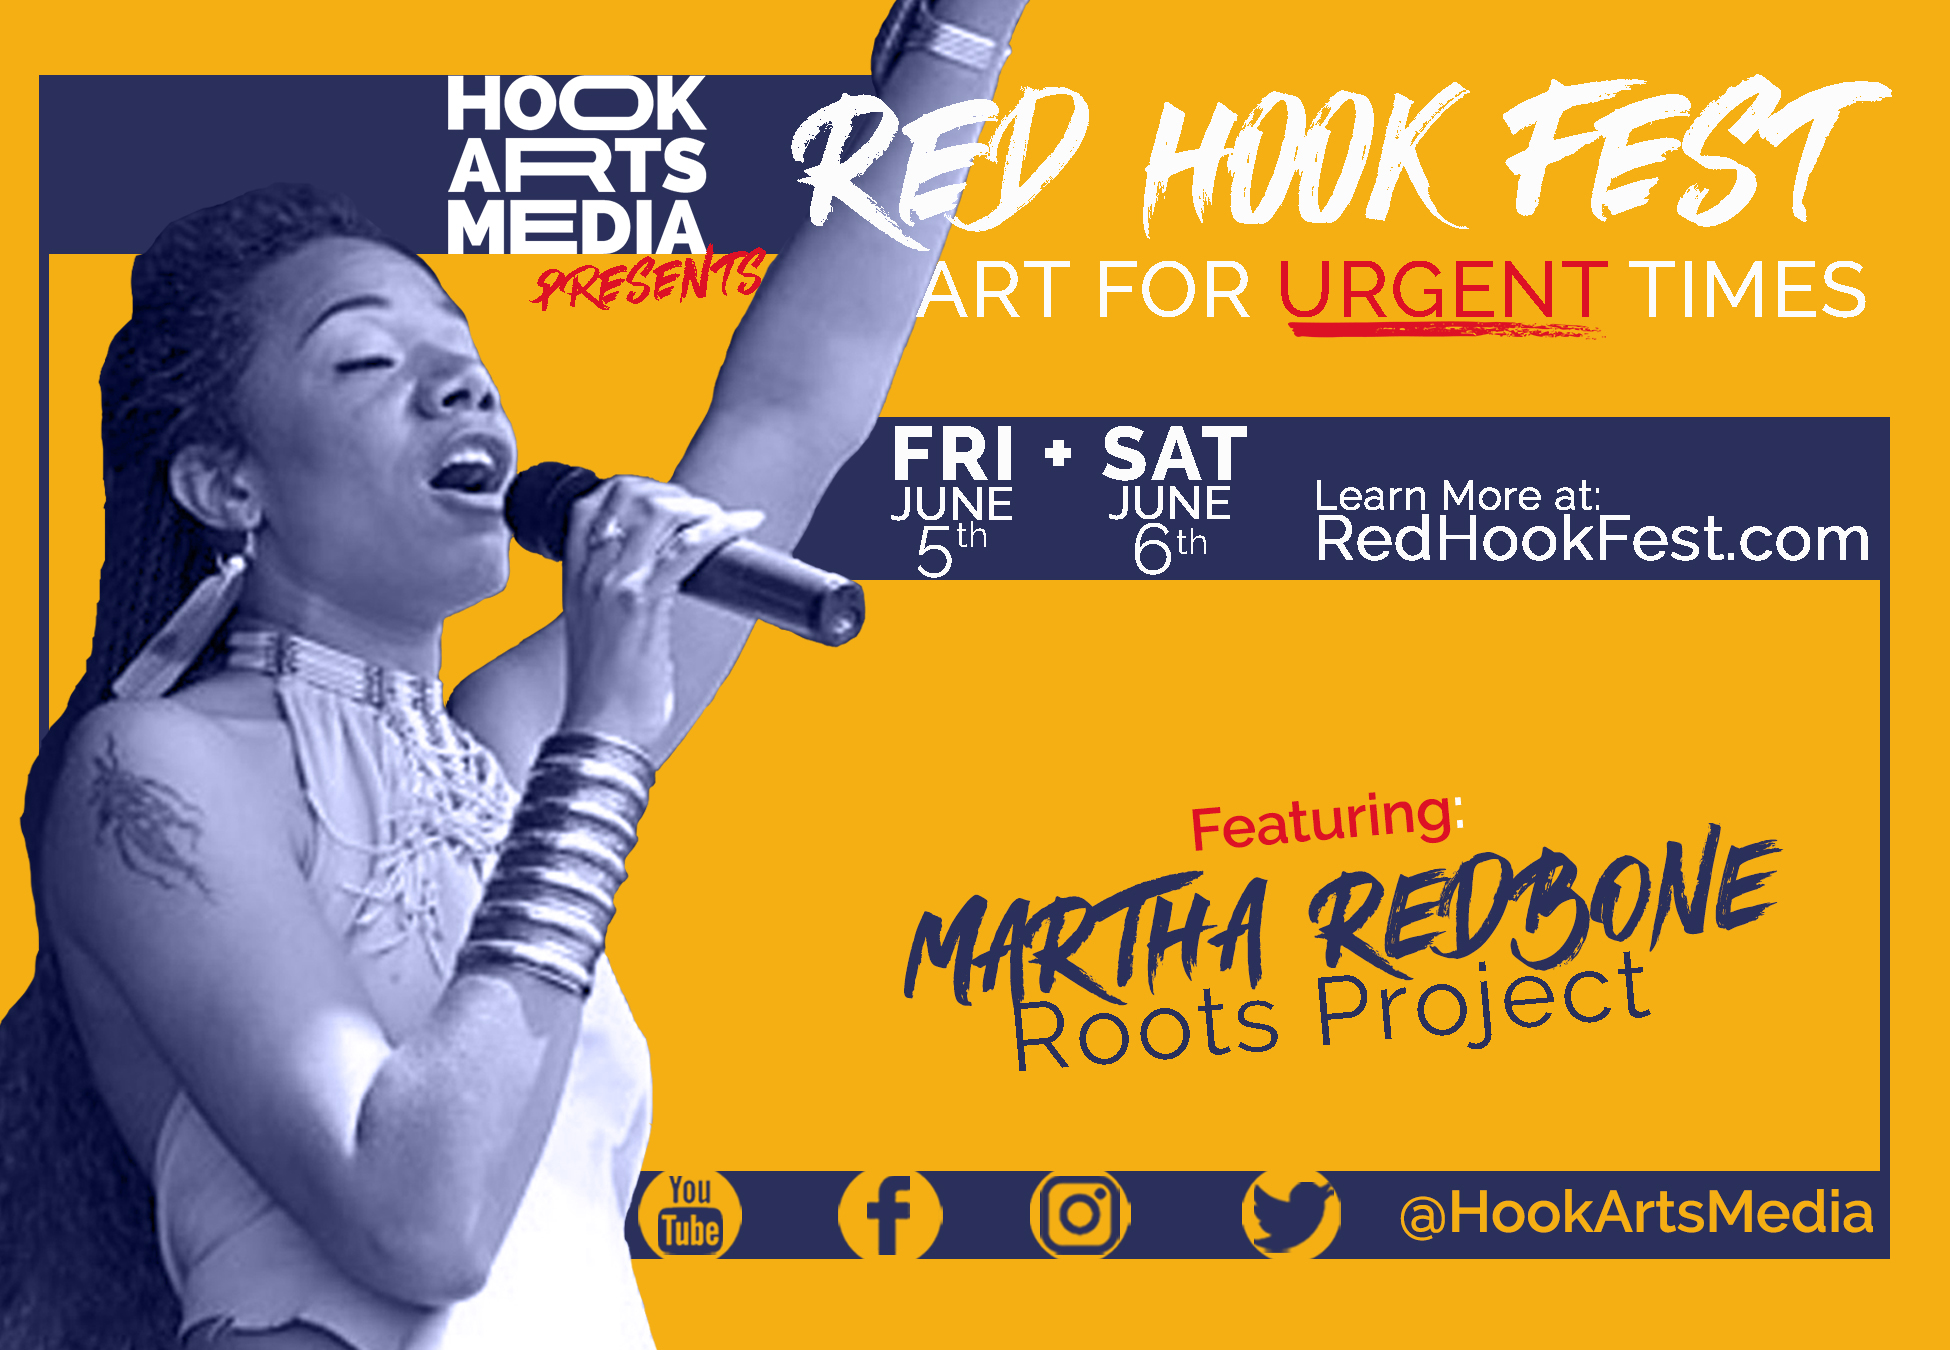 Martha Redbone Roots Project live in concert free Red Hook Fest 2020